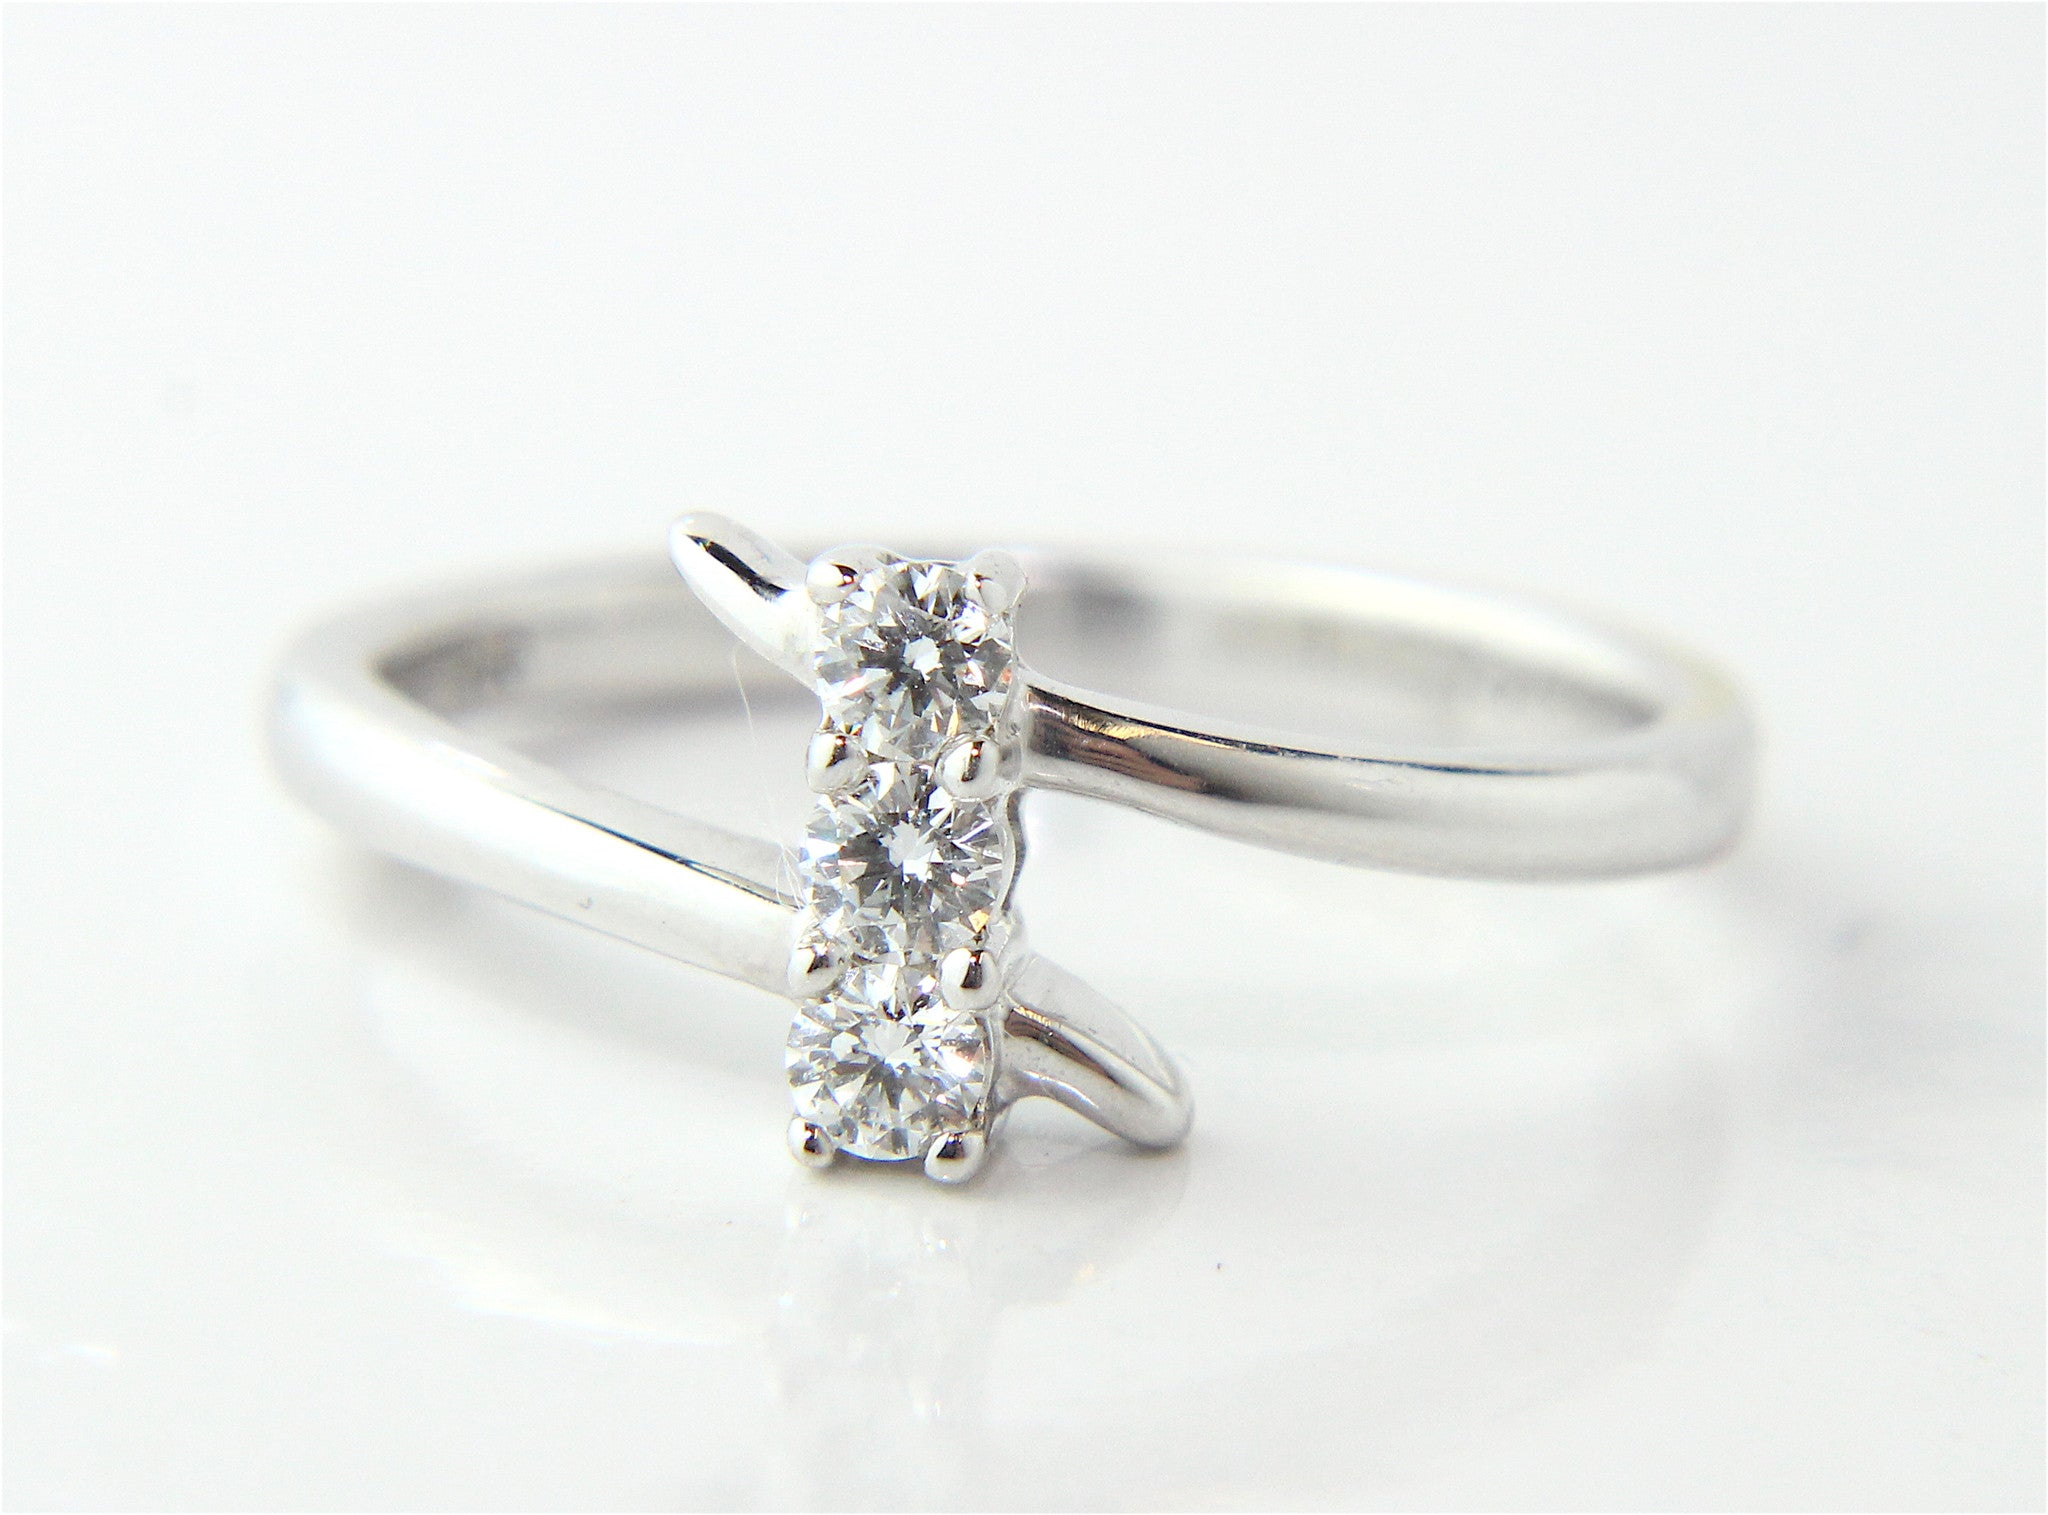 diamond smoky rings engagement yellow ring rosecut of dainty setting collections prong gold jewelry anueva grey galaxy